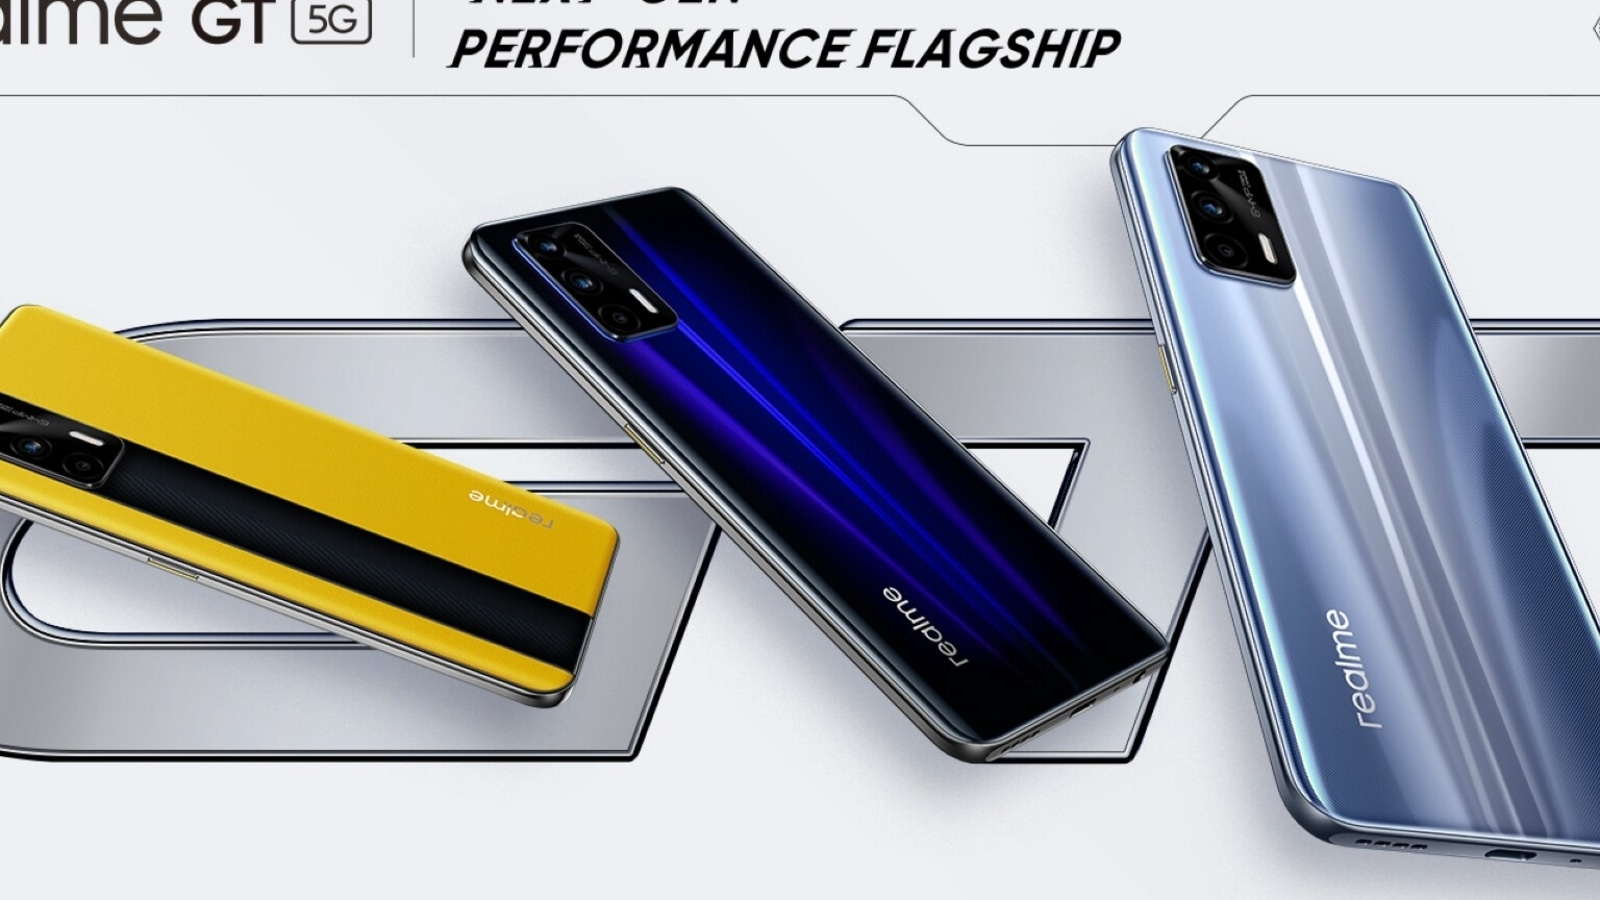 The Realme GT G5 will be launched in Europe next month